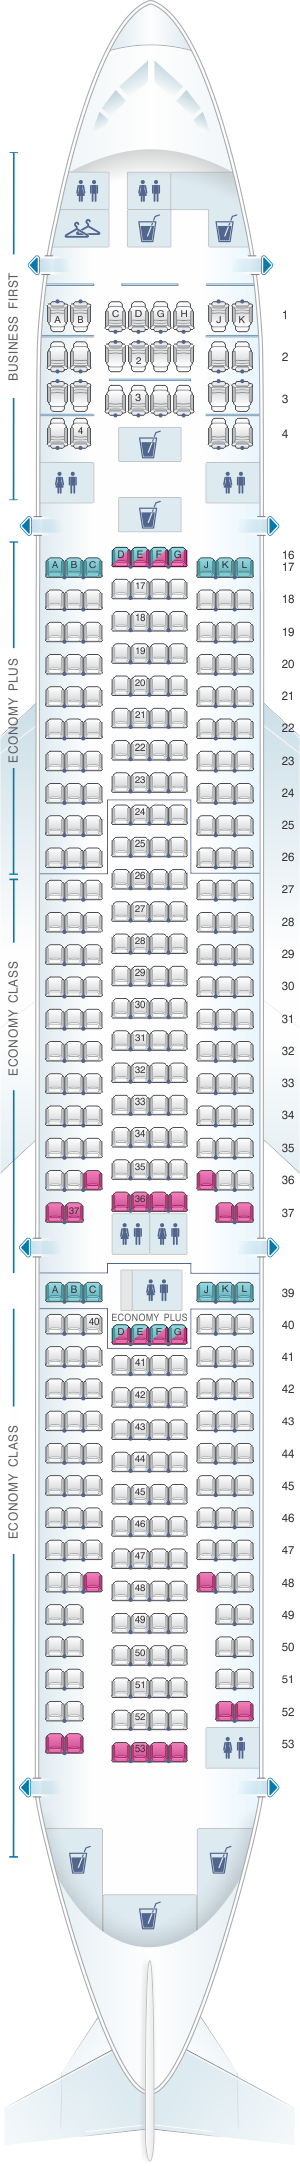 Seat map for United Airlines Boeing B777 200 (777) – version 4